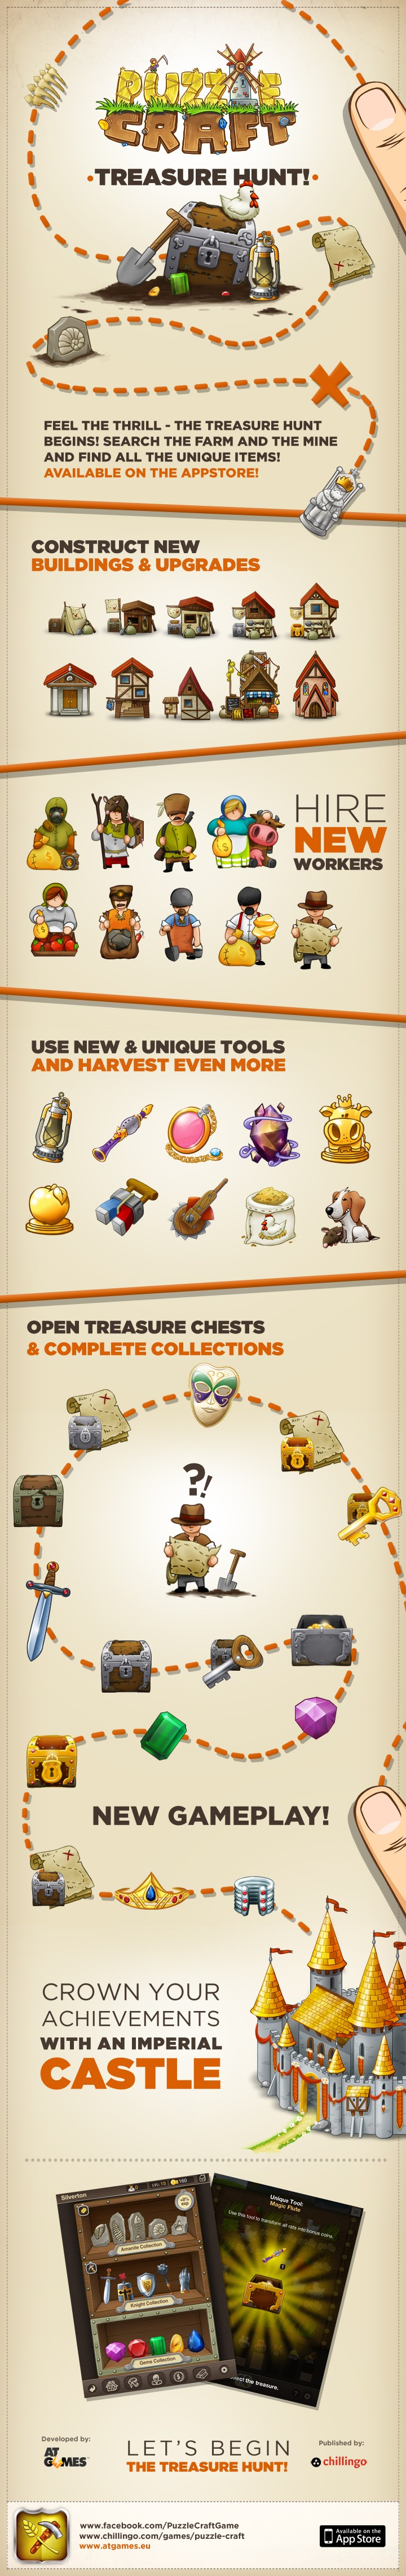 puzzle-craft-treasure-hunt-infographic